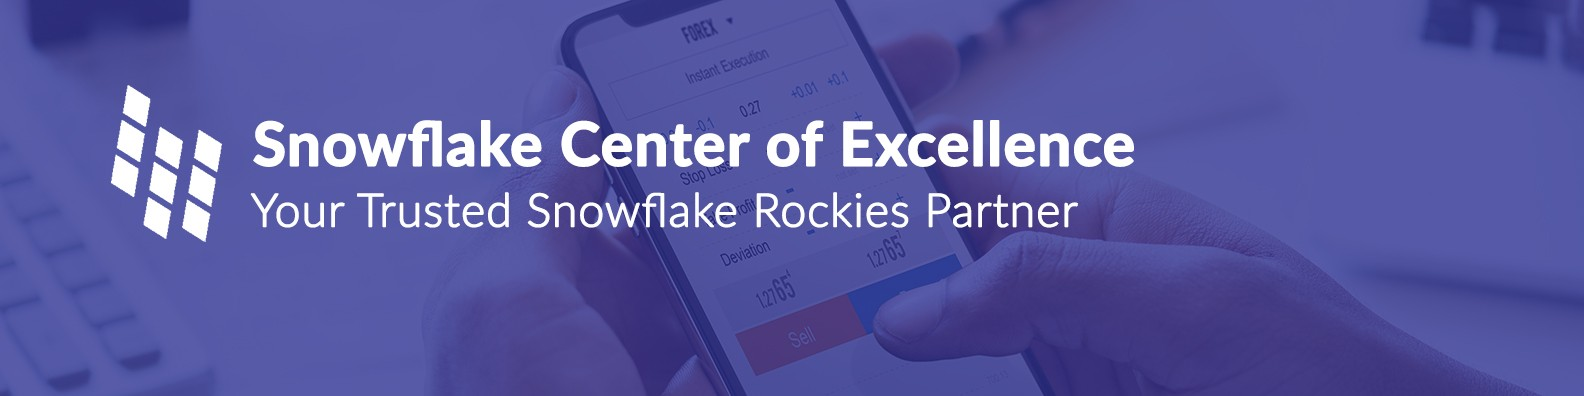 Snowflake Center of Excellence By Bddlabs | LinkedIn